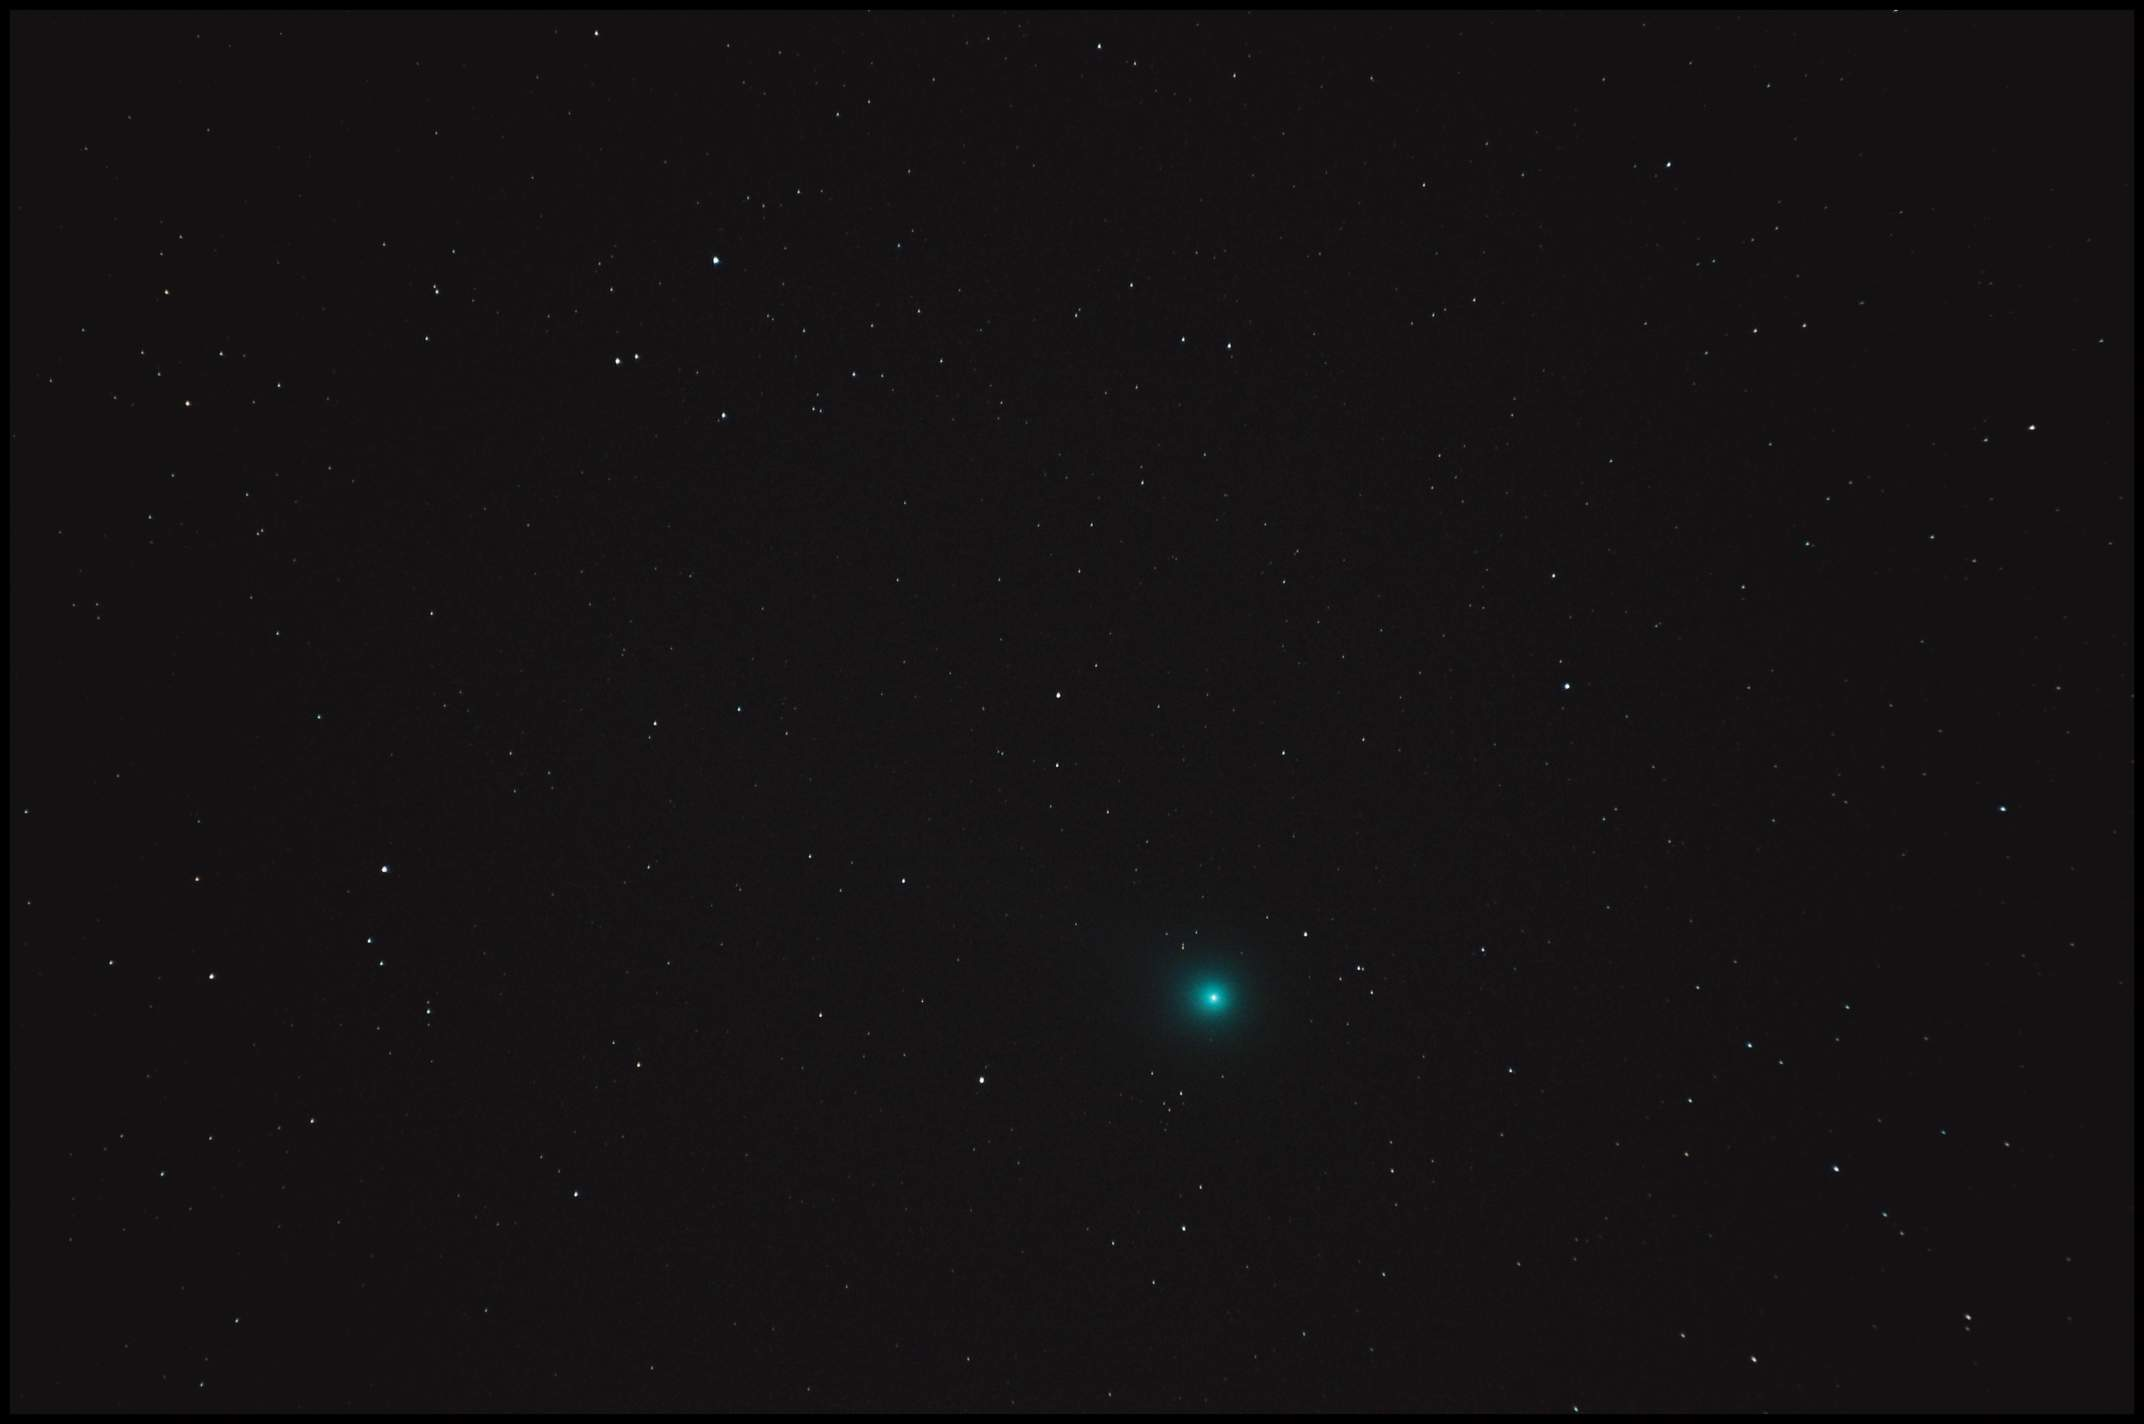 Lovejoy 270mm 2x30s ISO 3200 1